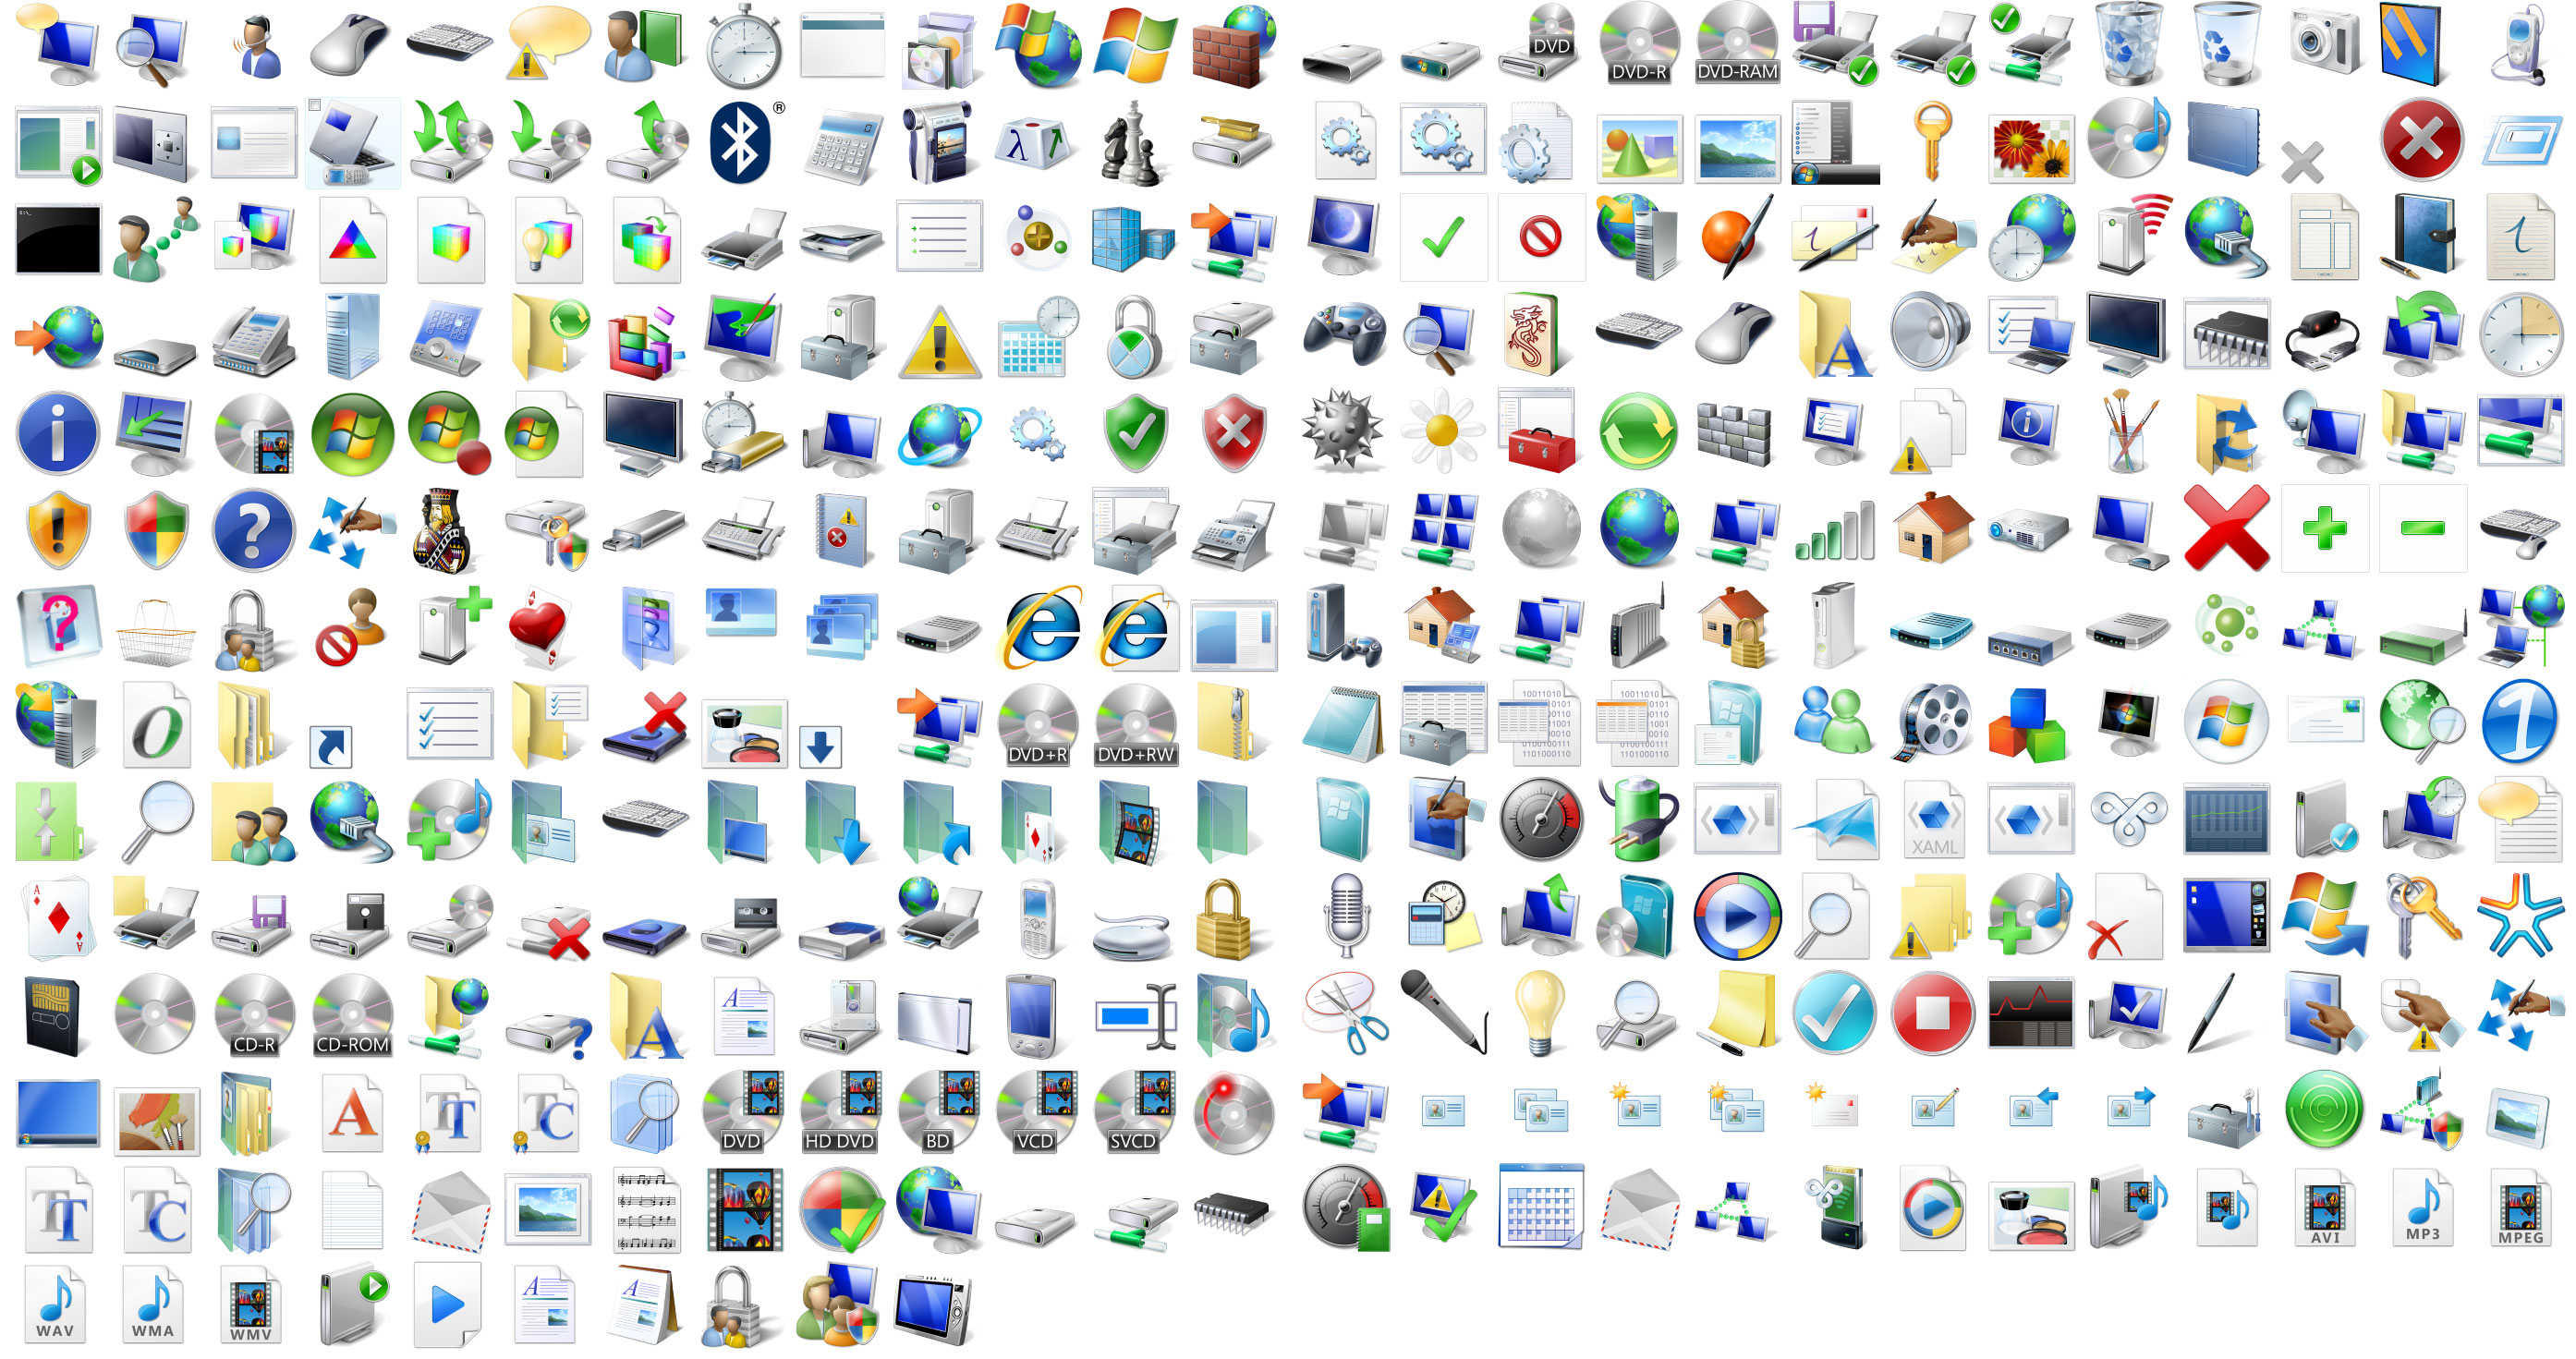 http://img15.deviantart.net/b9b9/i/2012/255/f/c/windows_vista_icons_by_matthewsp-d5eiojv.jpg